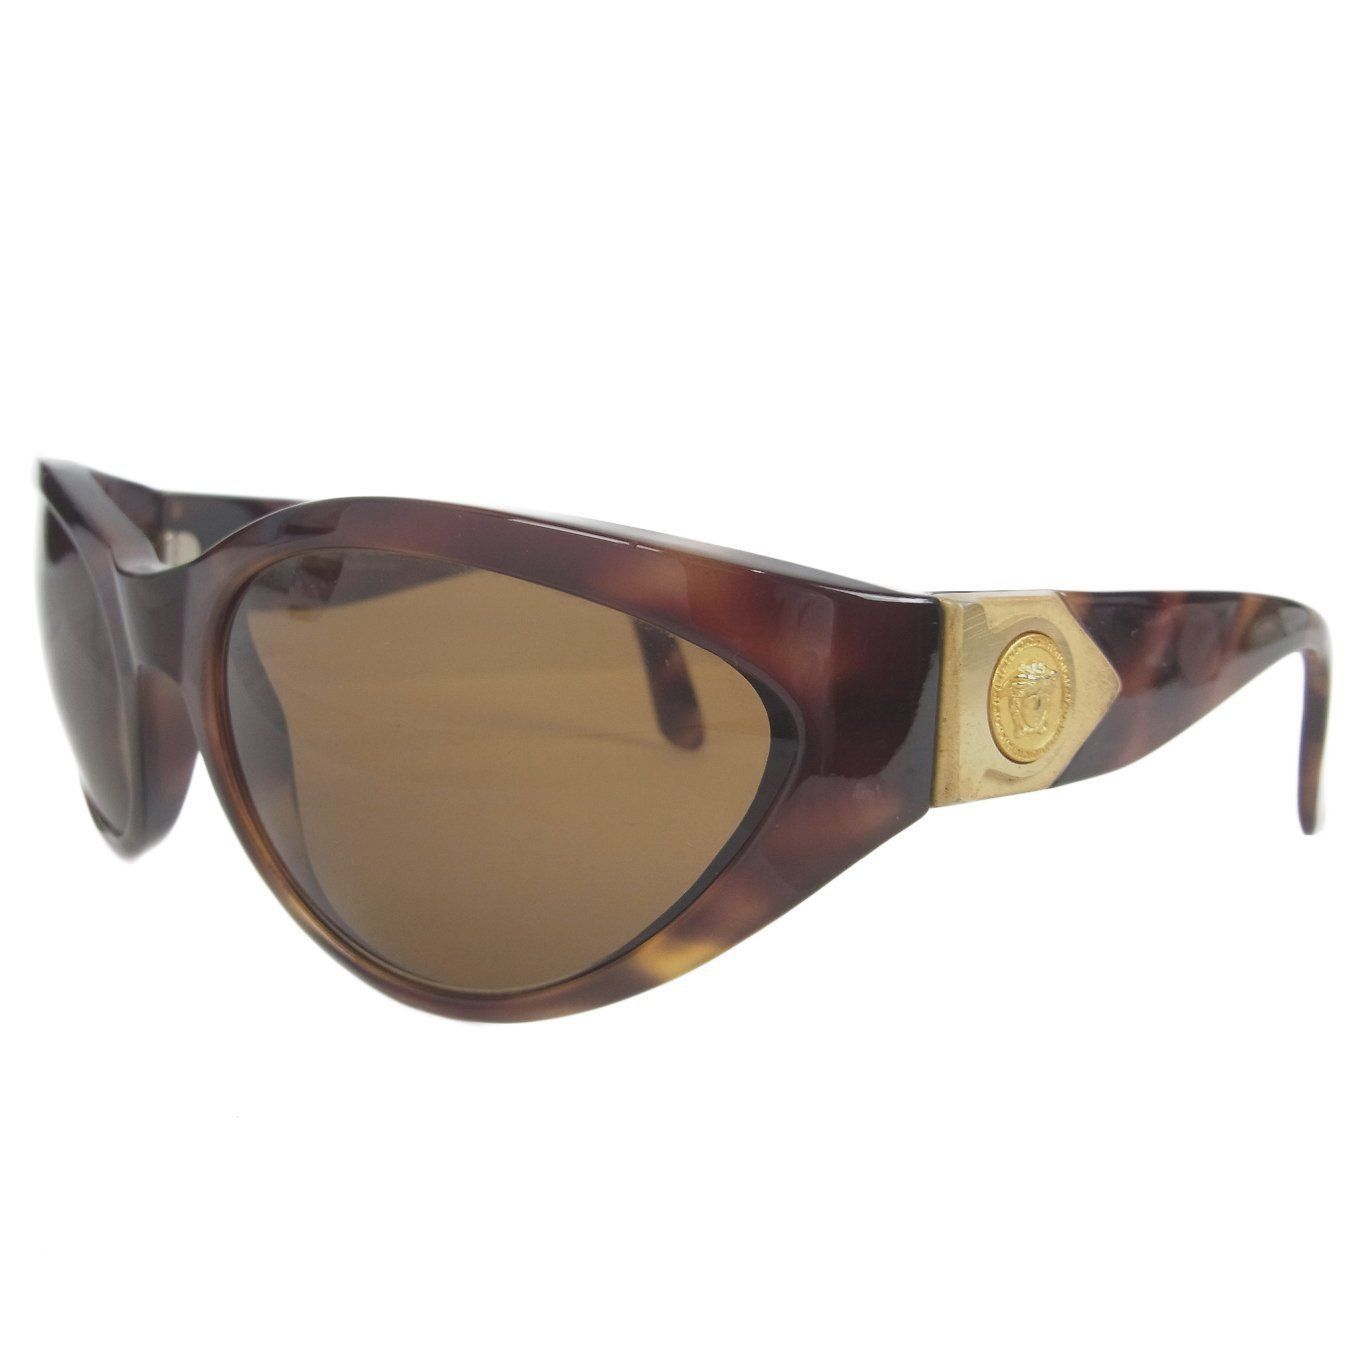 GIANNI VERSACE MOD.480 COL.900 TO Medusa Marble Cell Frame Sunglasses #28 - $277.20